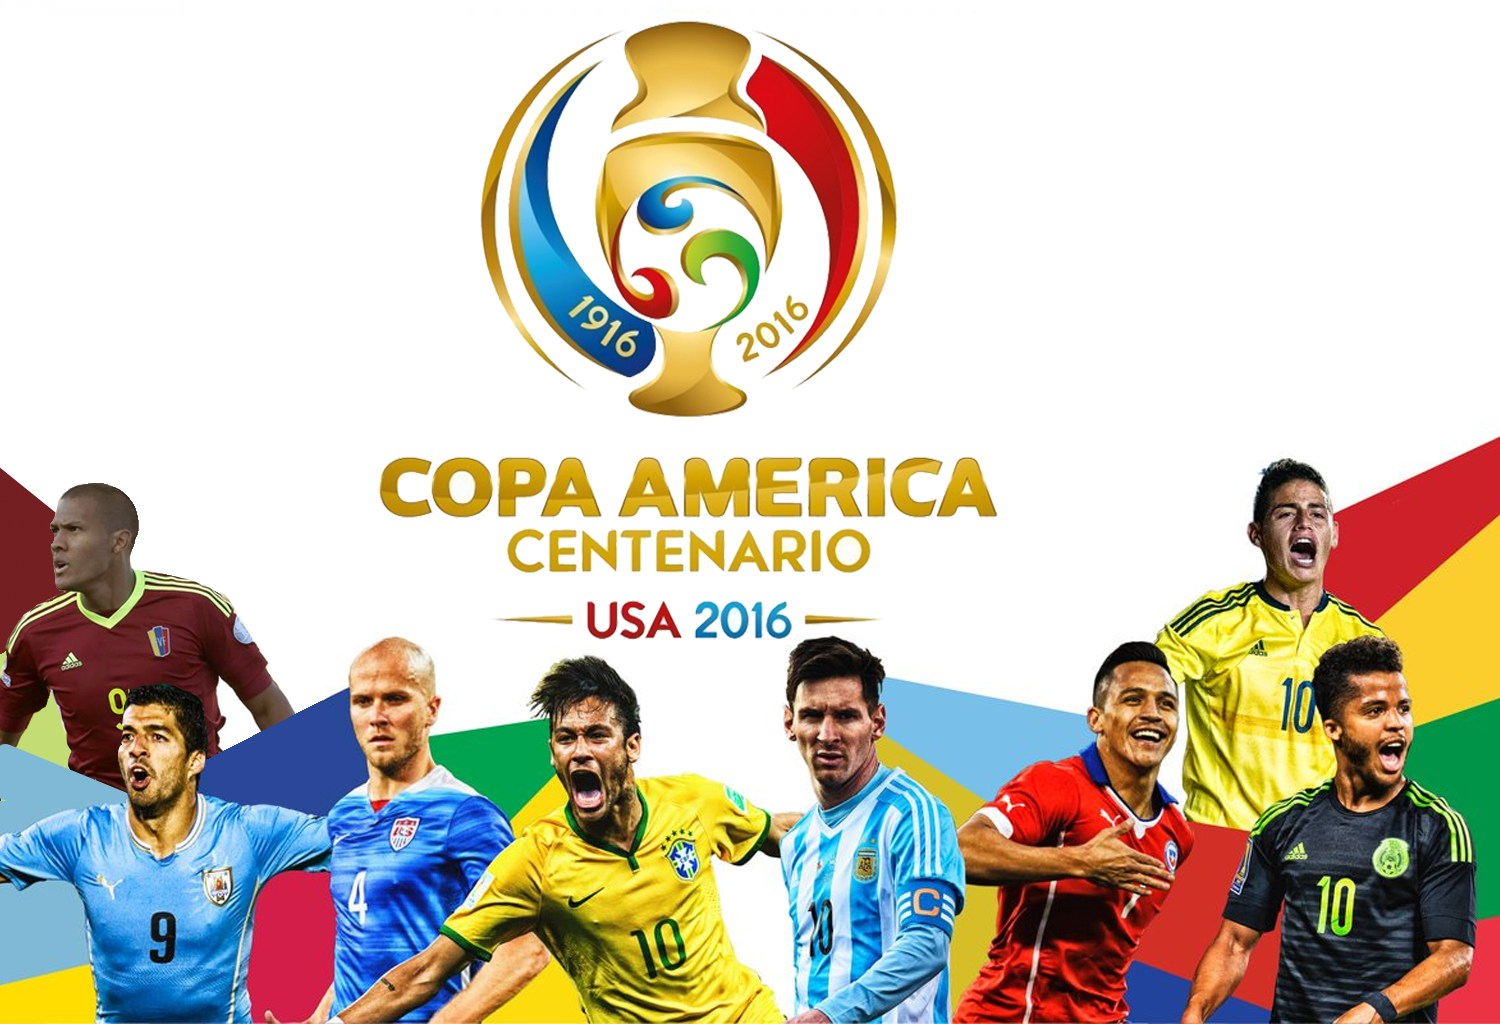 escape digital - Sigue la Copa América Centenario en tu móvil